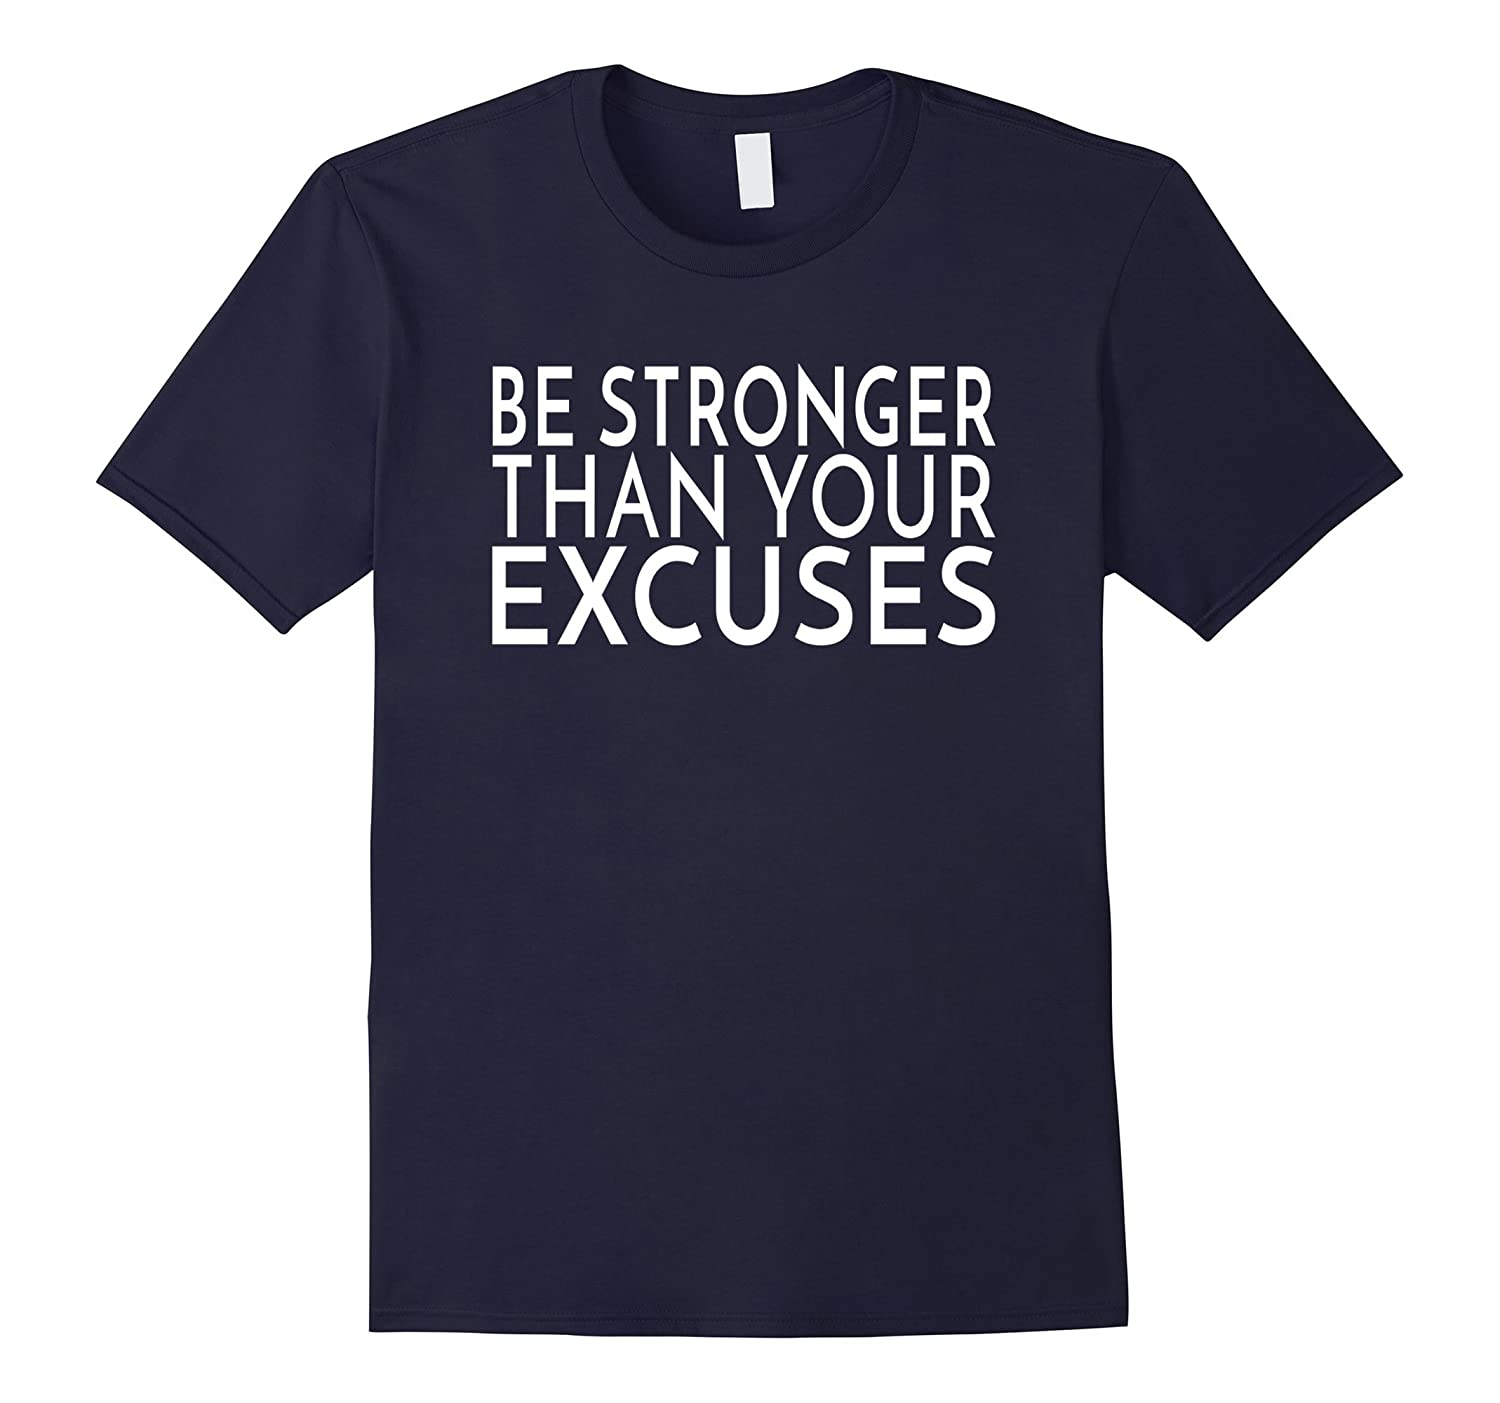 Be Stronger Than Your Excuses Shirt - Fitness Motivation-Vaci